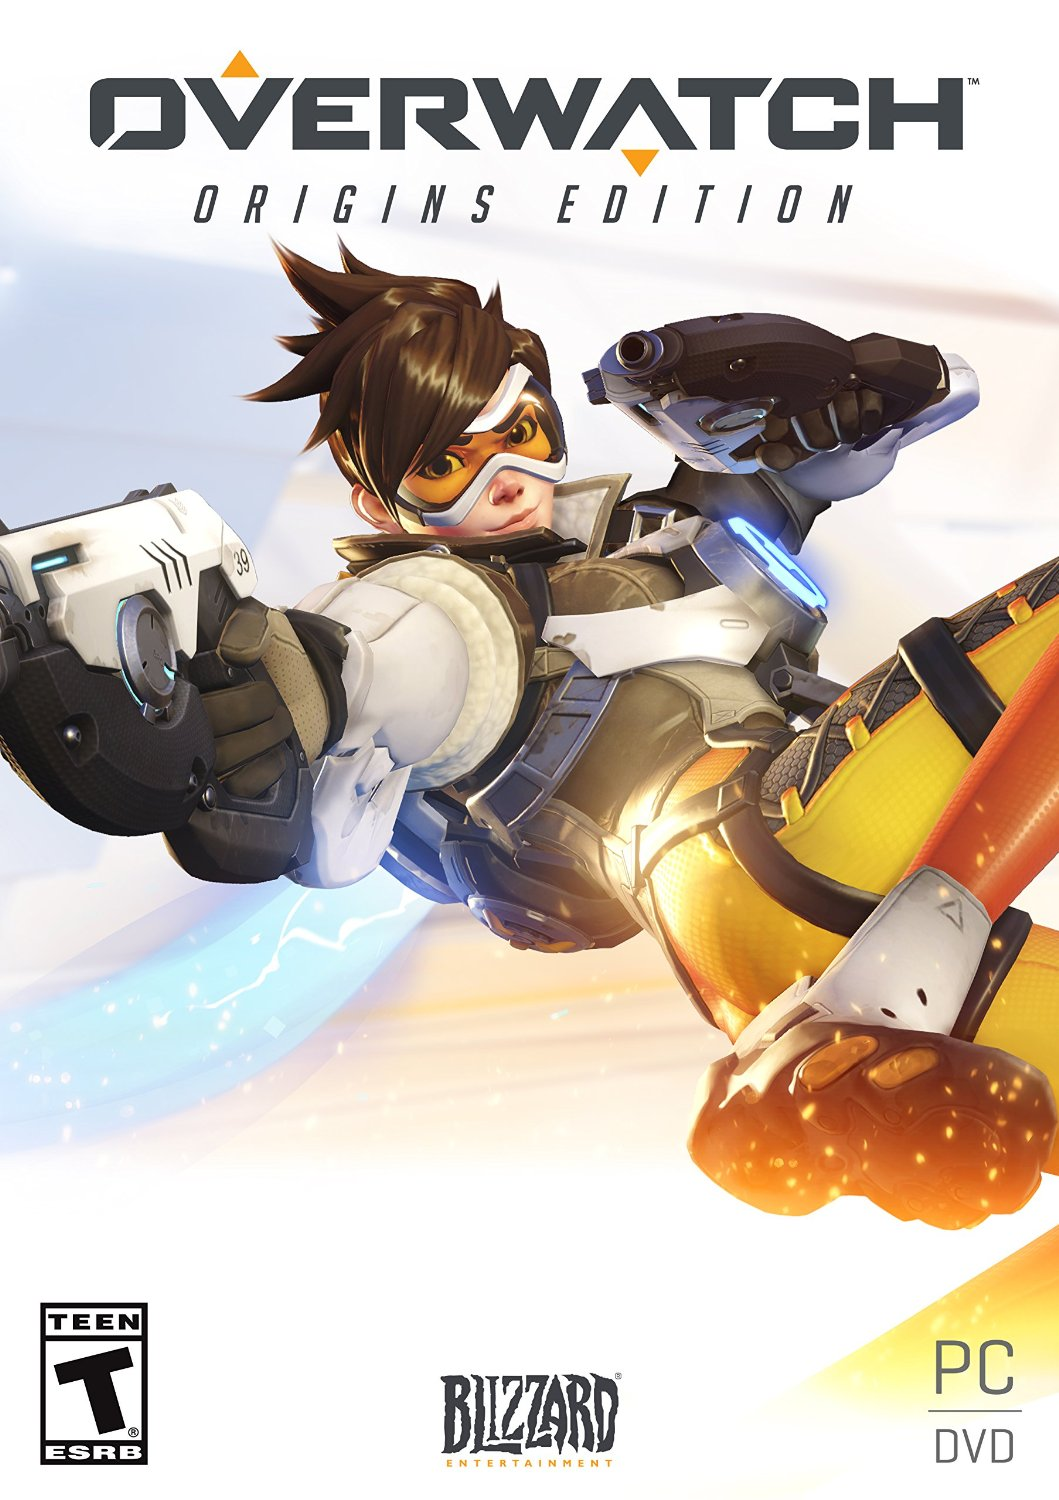 New Games Overwatch Ps4 Pc Xbox One The